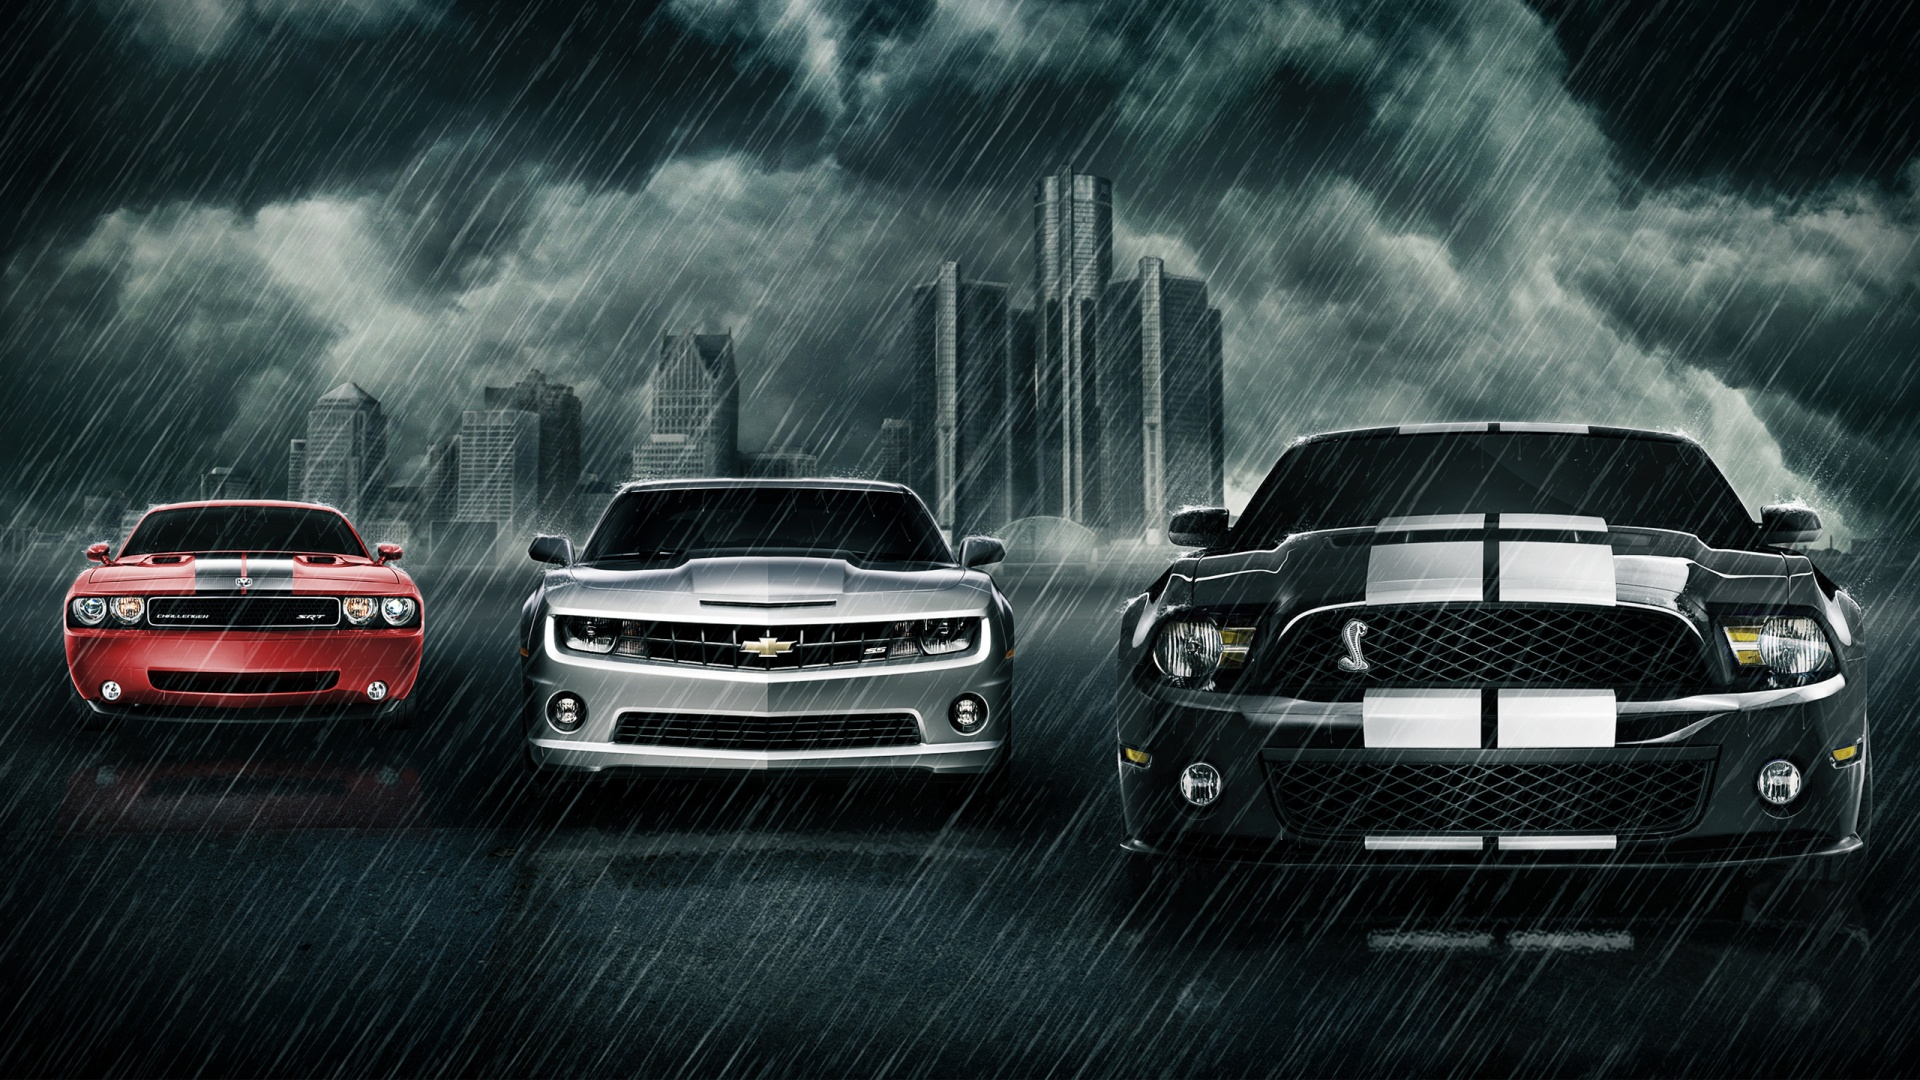 Muscle Cars Wallpapers In Jpg Format For Free Download